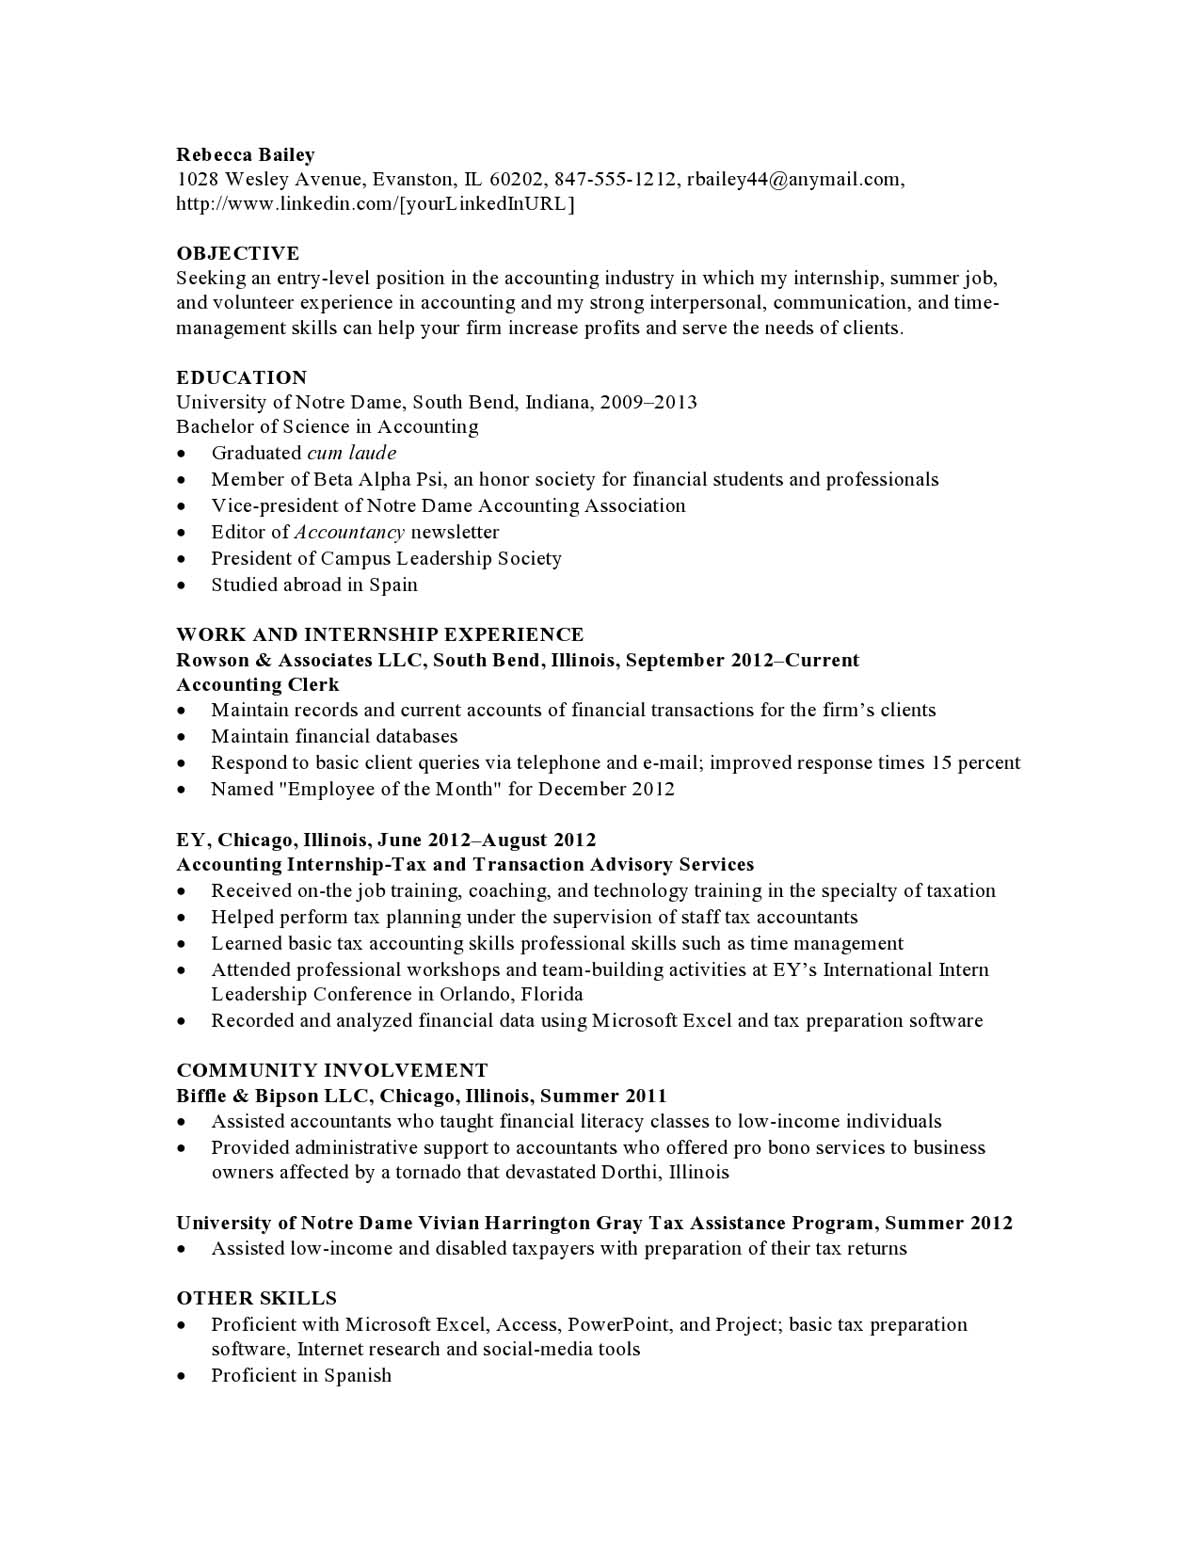 resume samples templates examples vault for its jobs crescoact19 sample format salesman Resume Resume Examples For Its Jobs